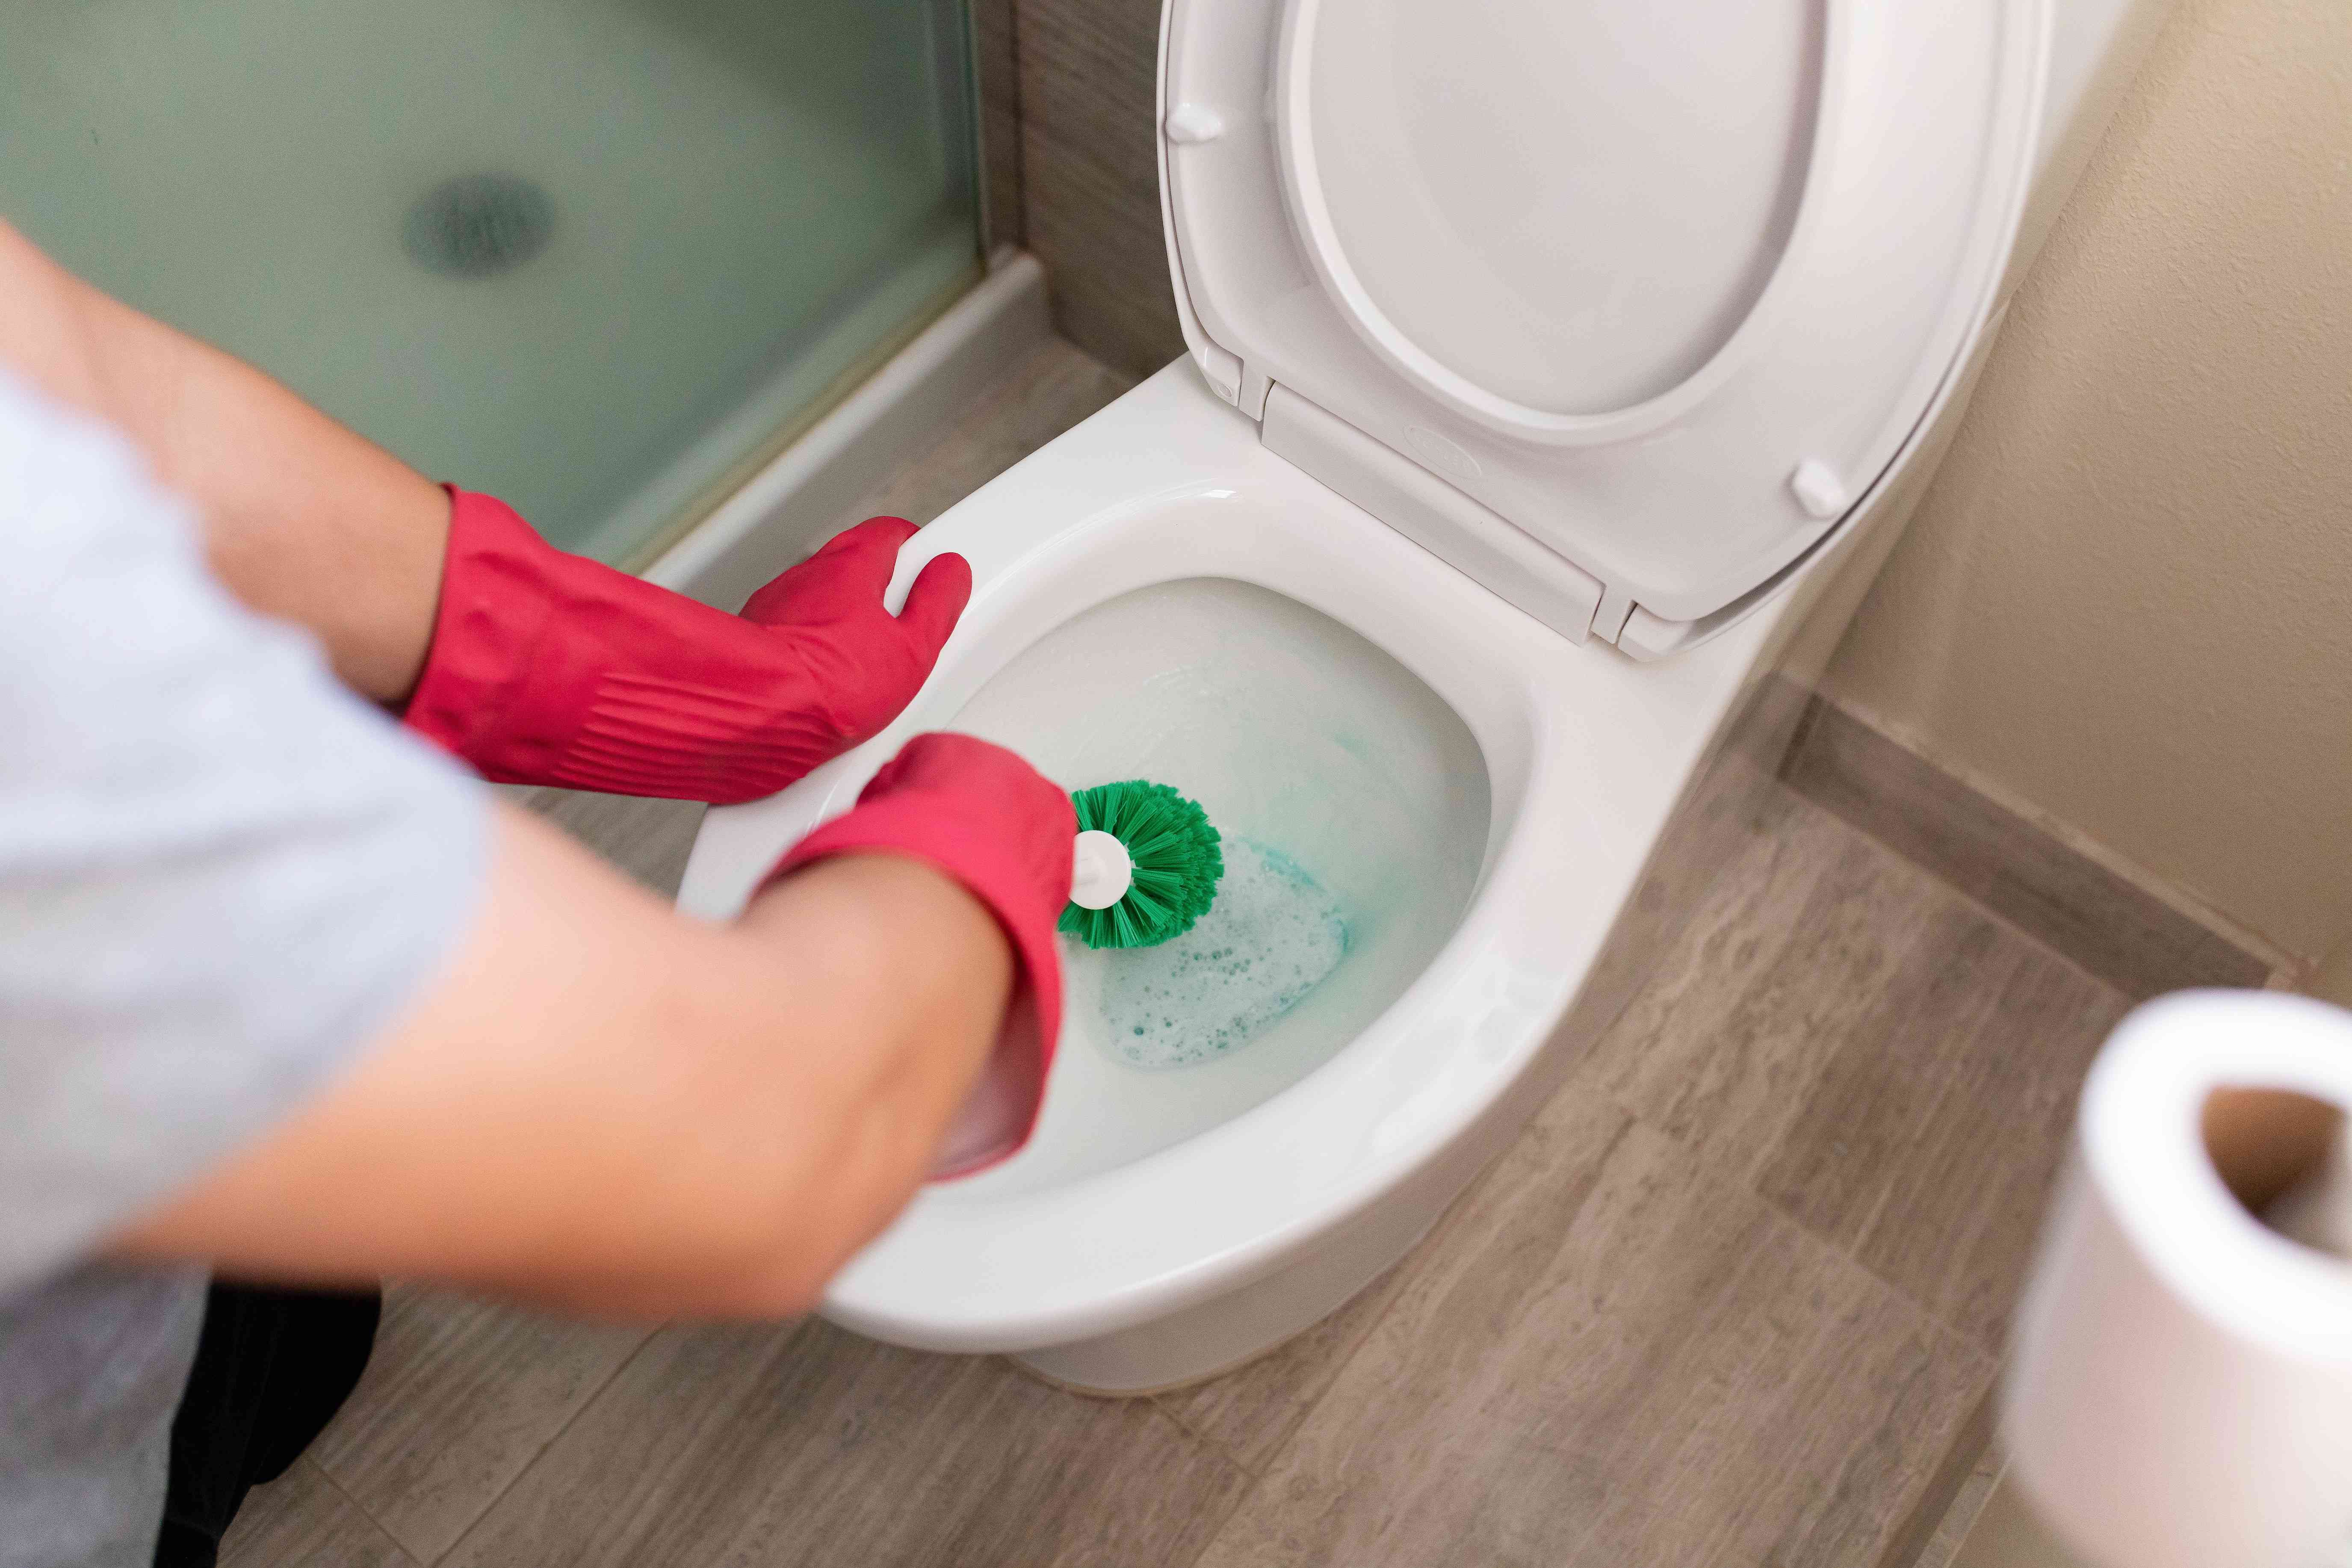 use a toilet brush to clean the inside of the toilet bowl